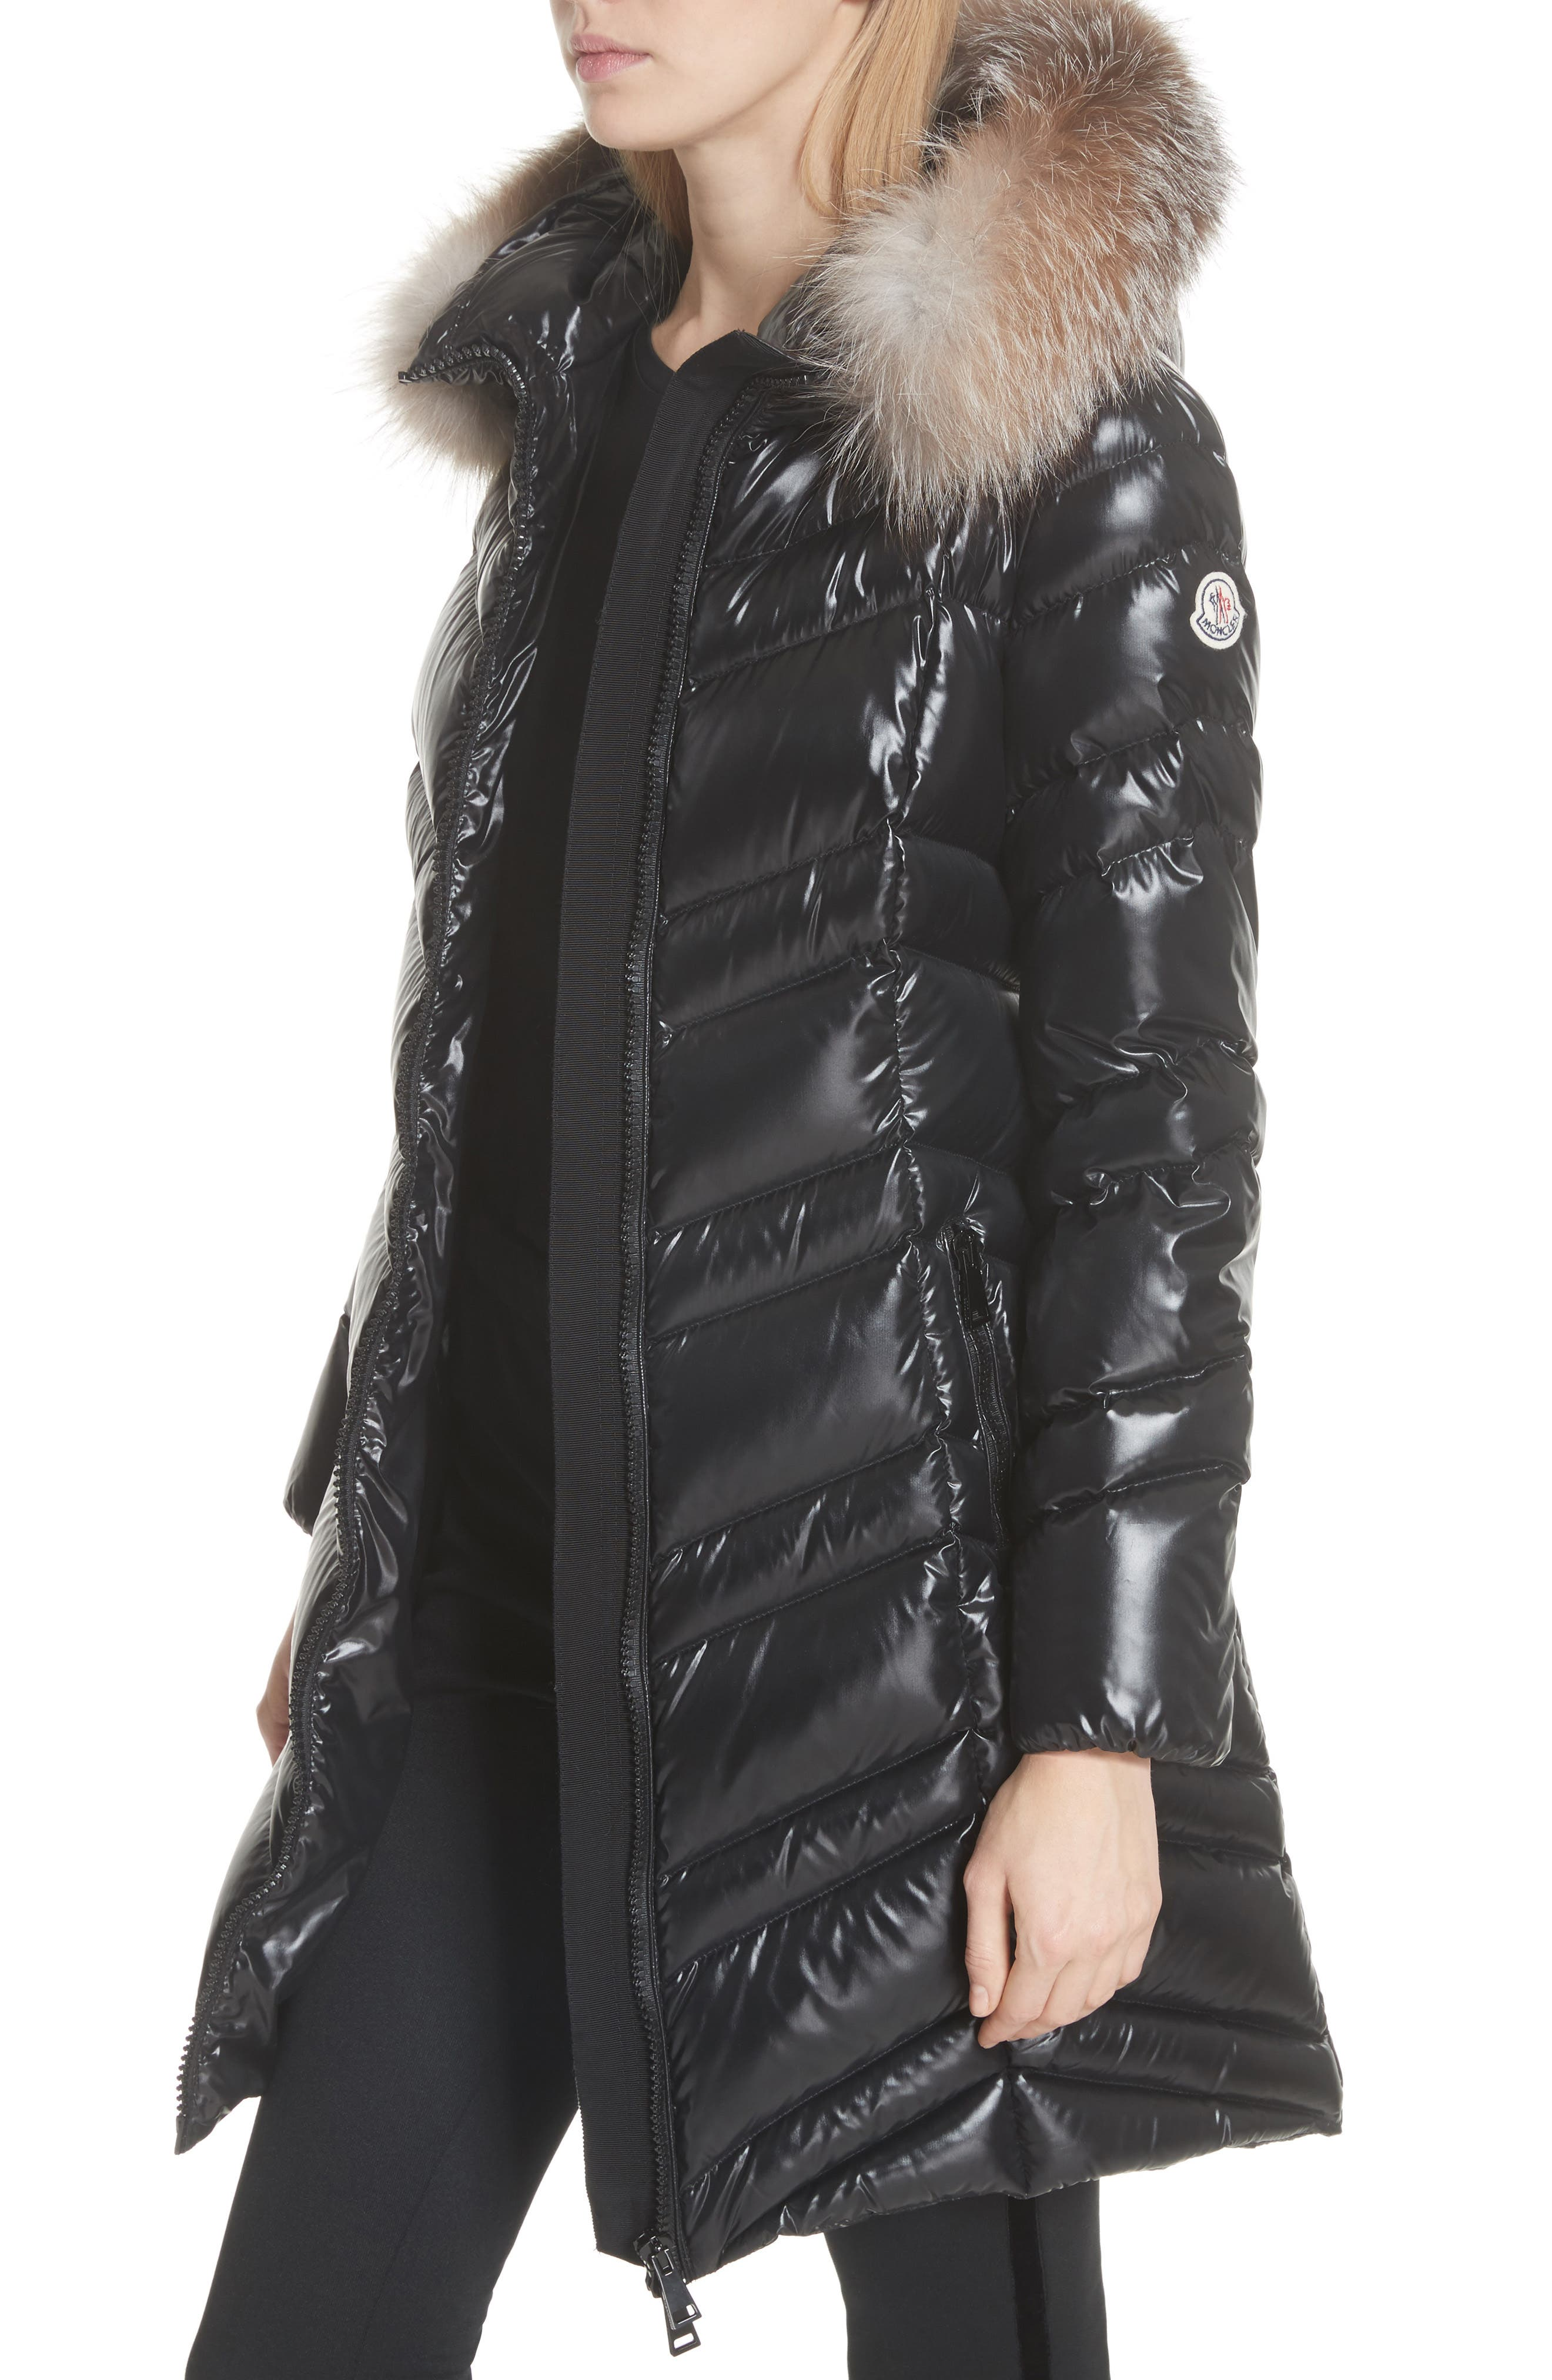 Fulmar Hooded Down Puffer Coat with Removable Genuine Fox Fur Trim,                             Alternate thumbnail 5, color,                             001